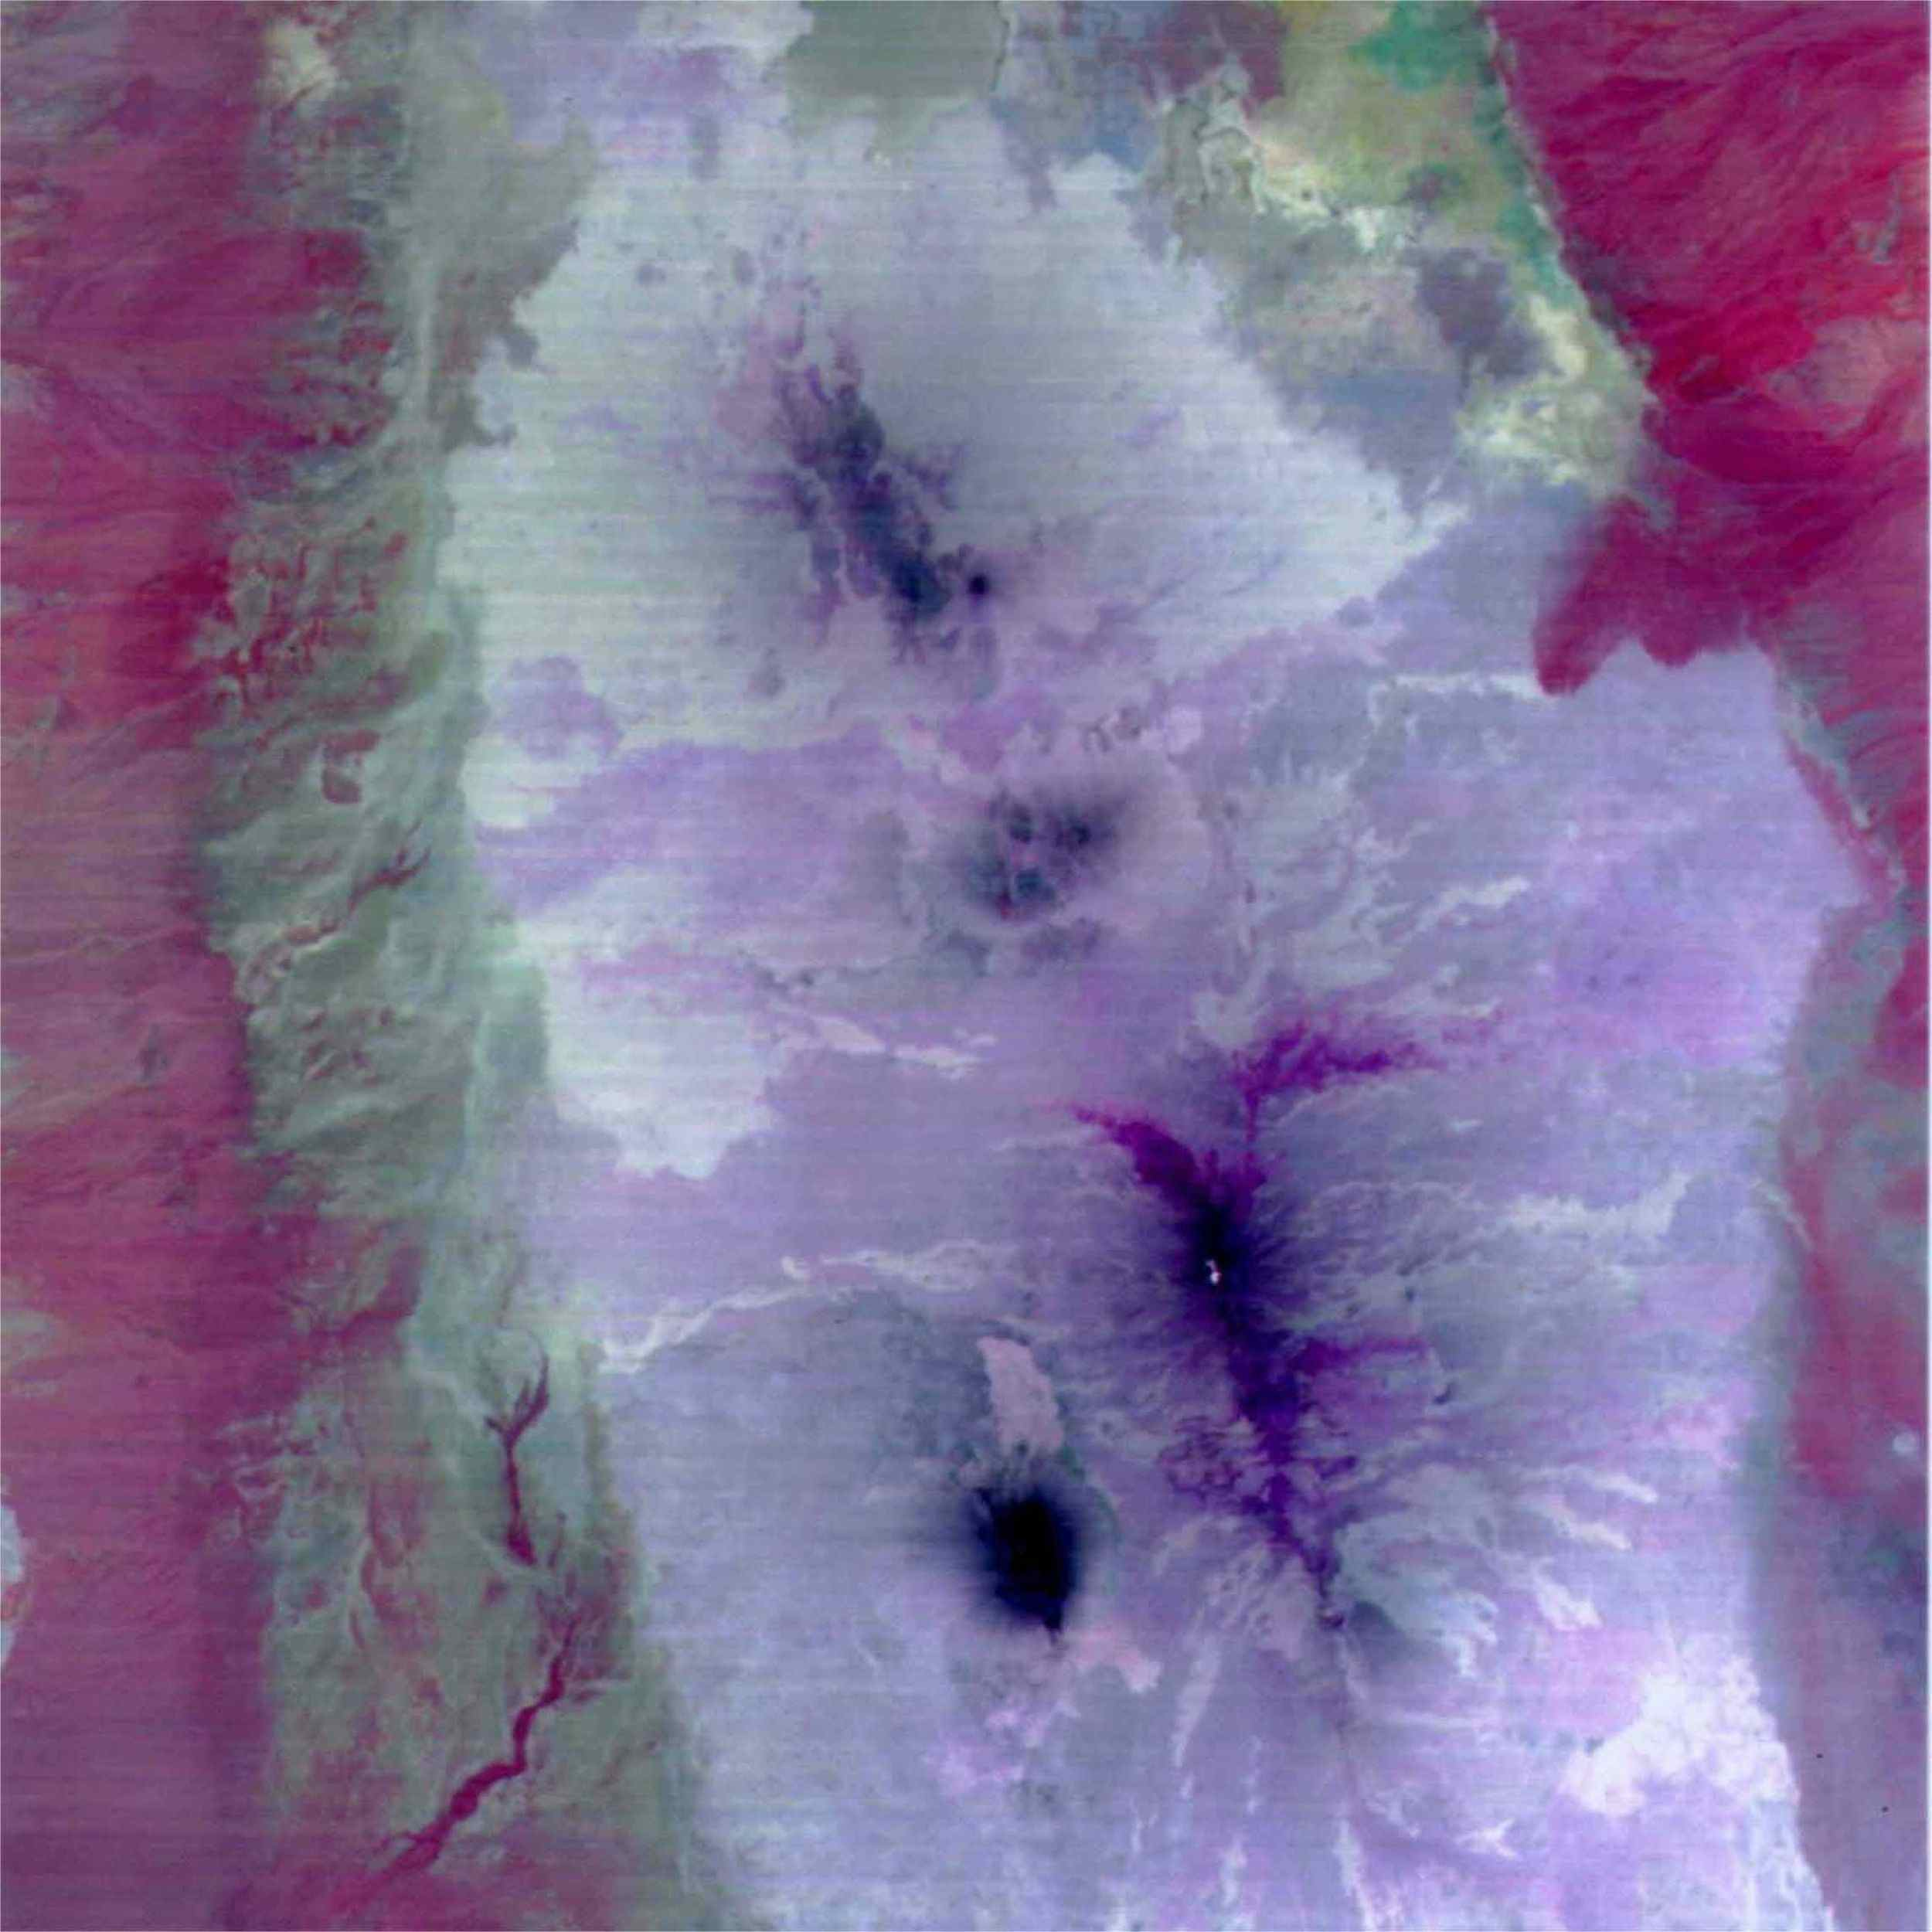 This image from NASA's Terra spacecraft is a color composite covering the Rift Valley inland area of Ethiopia.